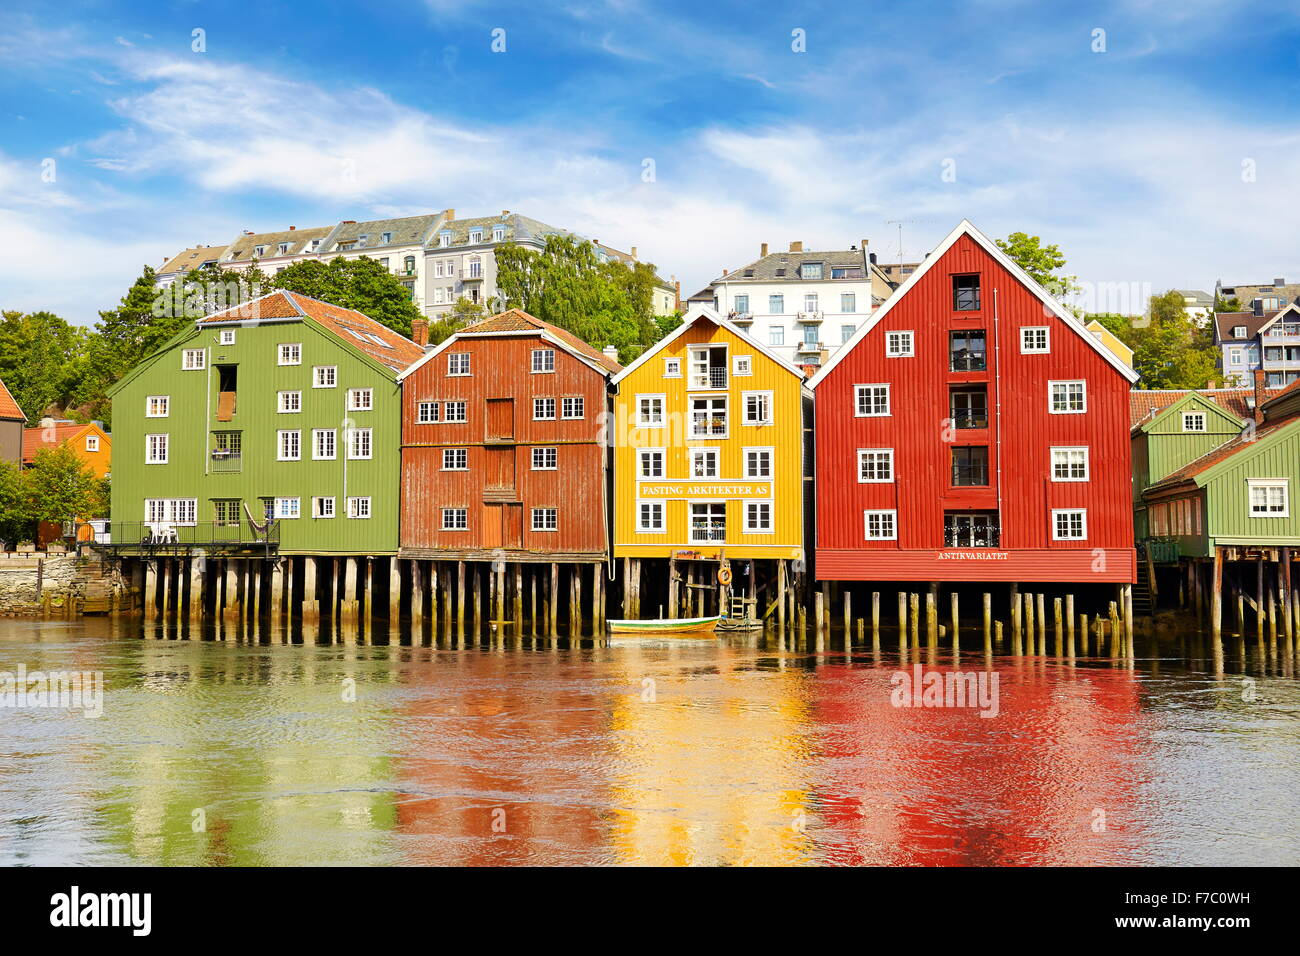 Colorful historic storage houses in Trondheim, Norway - Stock Image